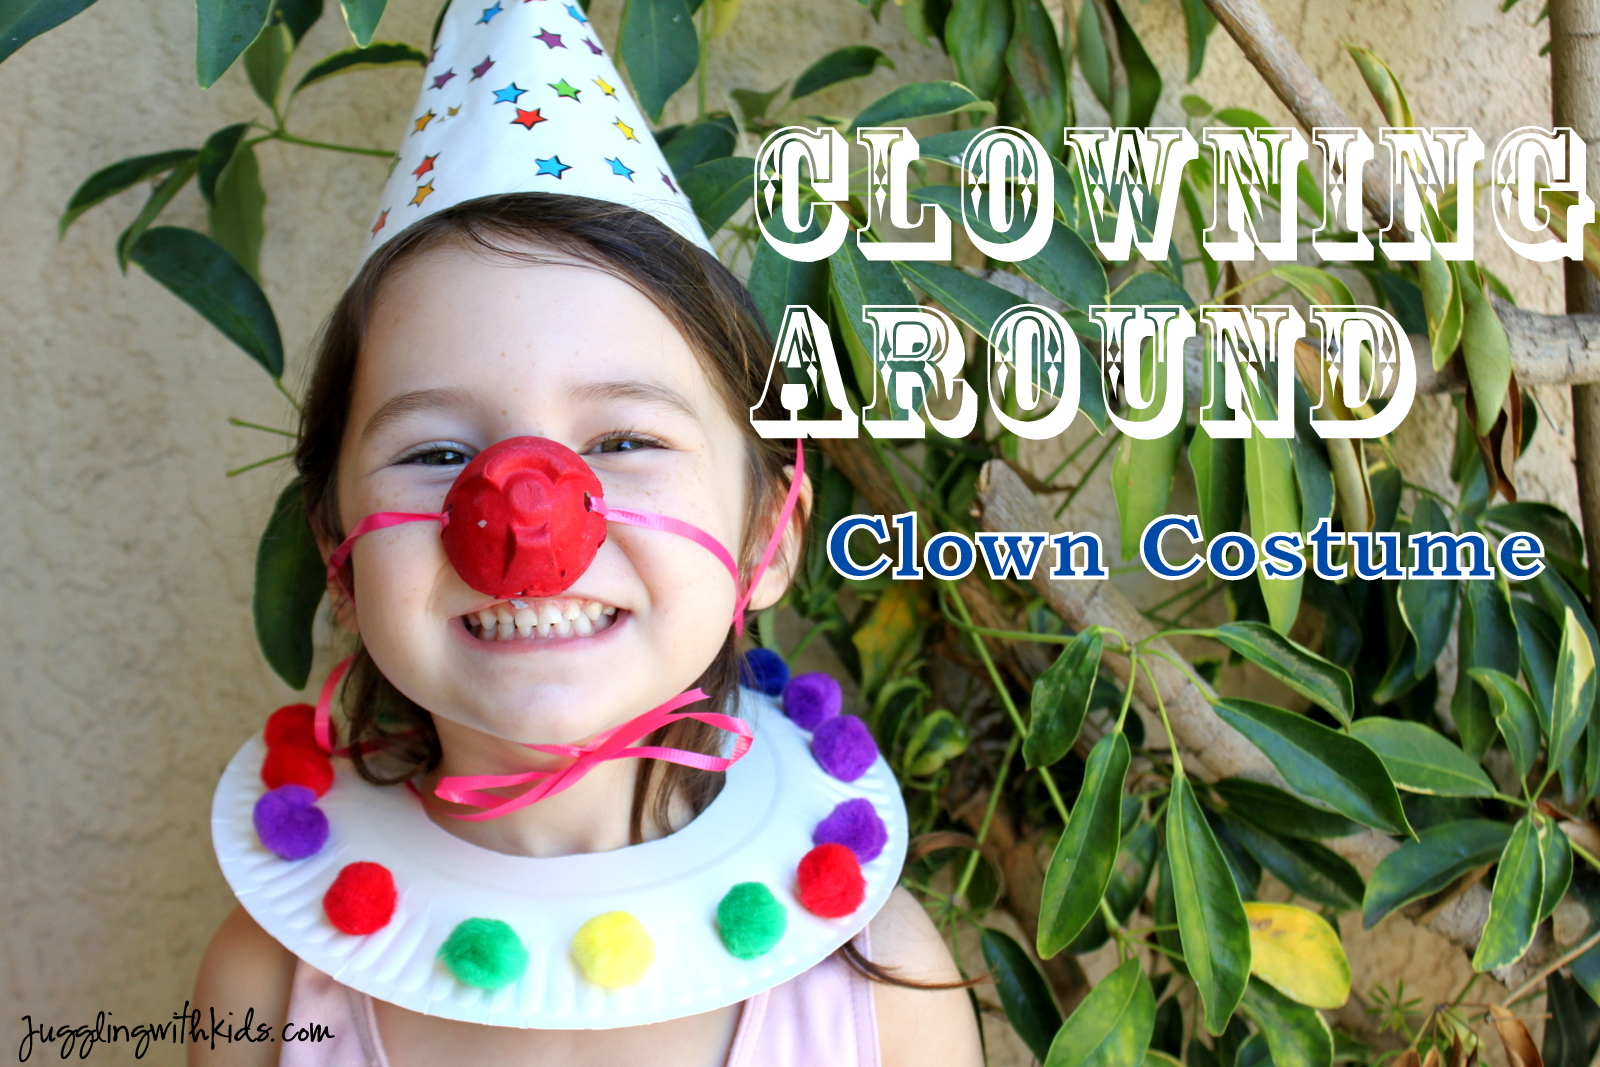 Clowning Around Clown Costume  sc 1 st  Juggling With Kids & Clowning Around: Clown Costume u2013 Juggling With Kids